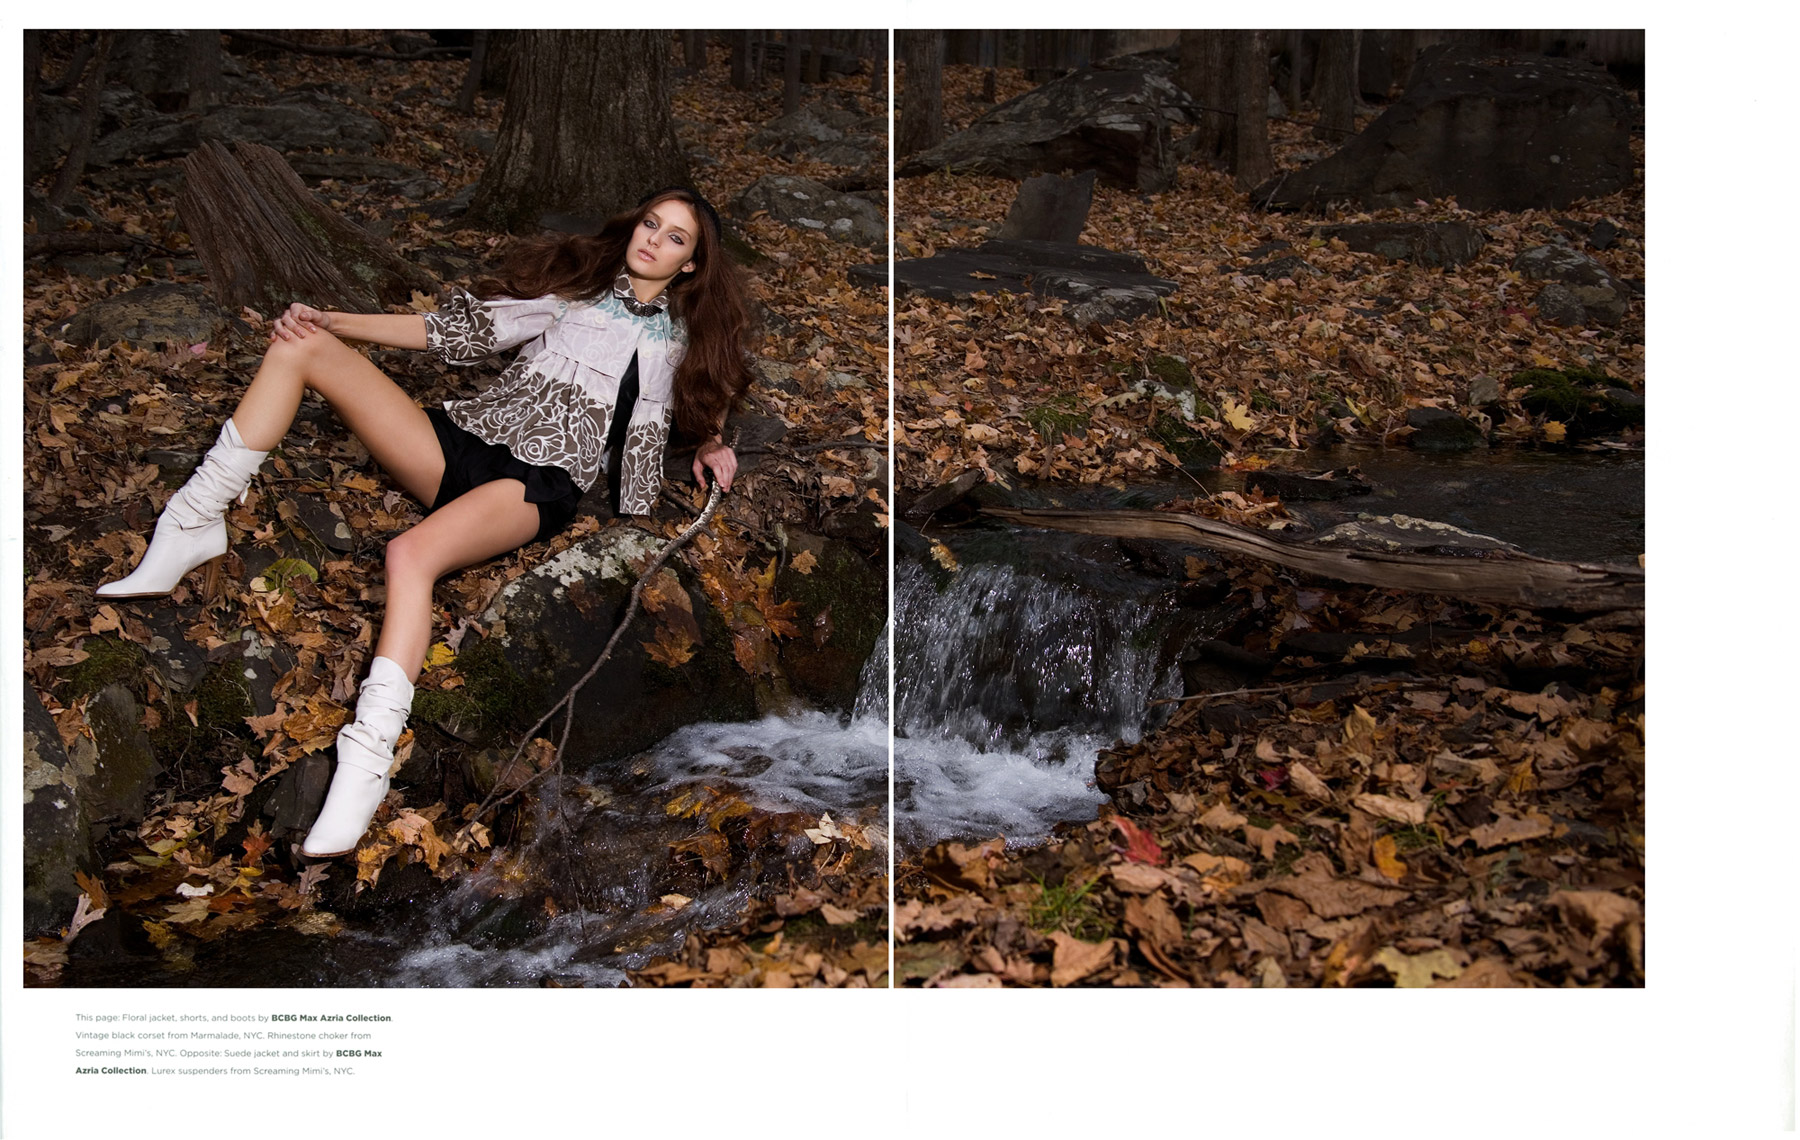 BCBG Max Azria for Flaunt Magazine